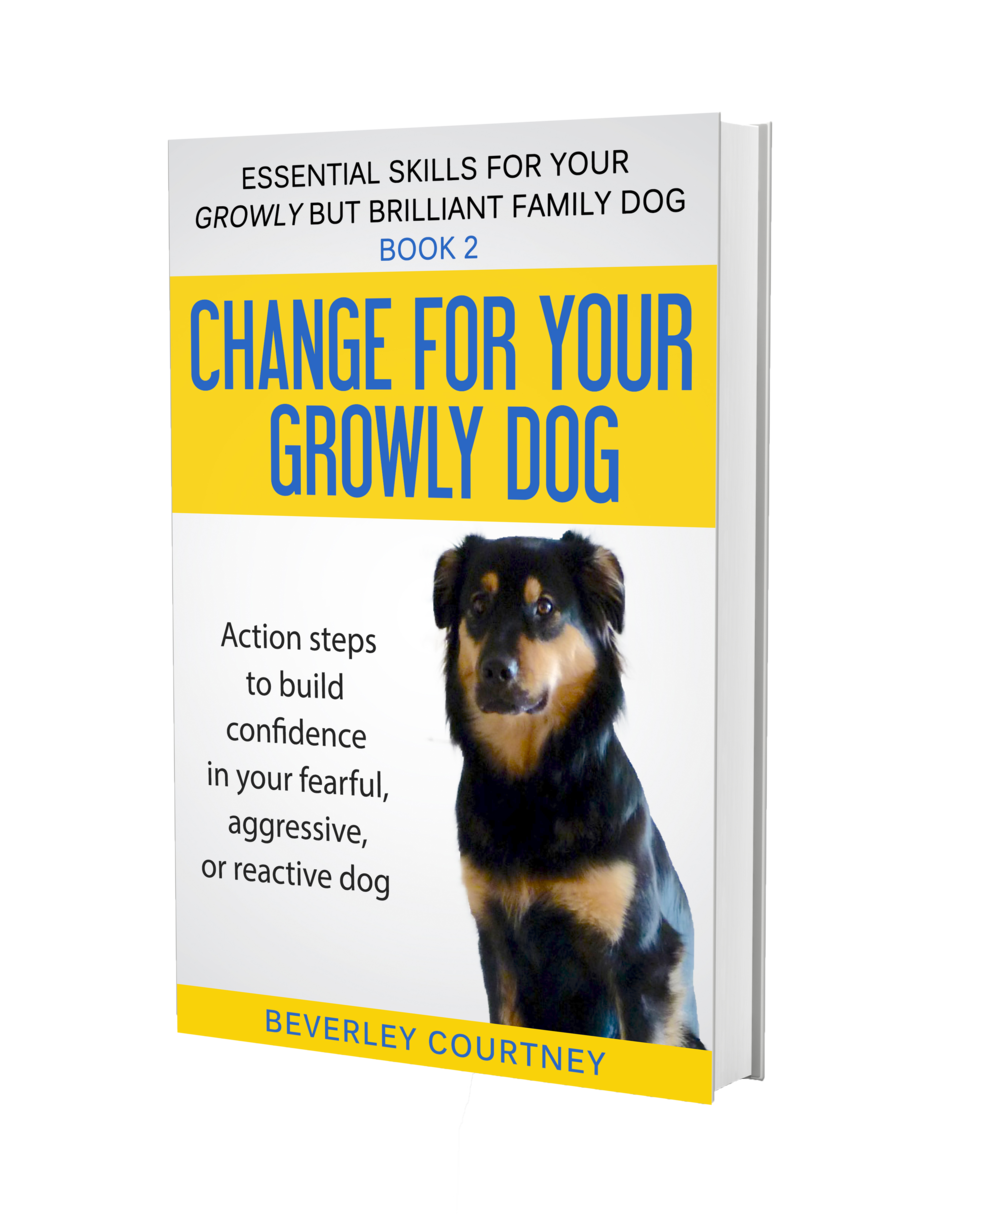 Change for your Growly Dog - Book 2